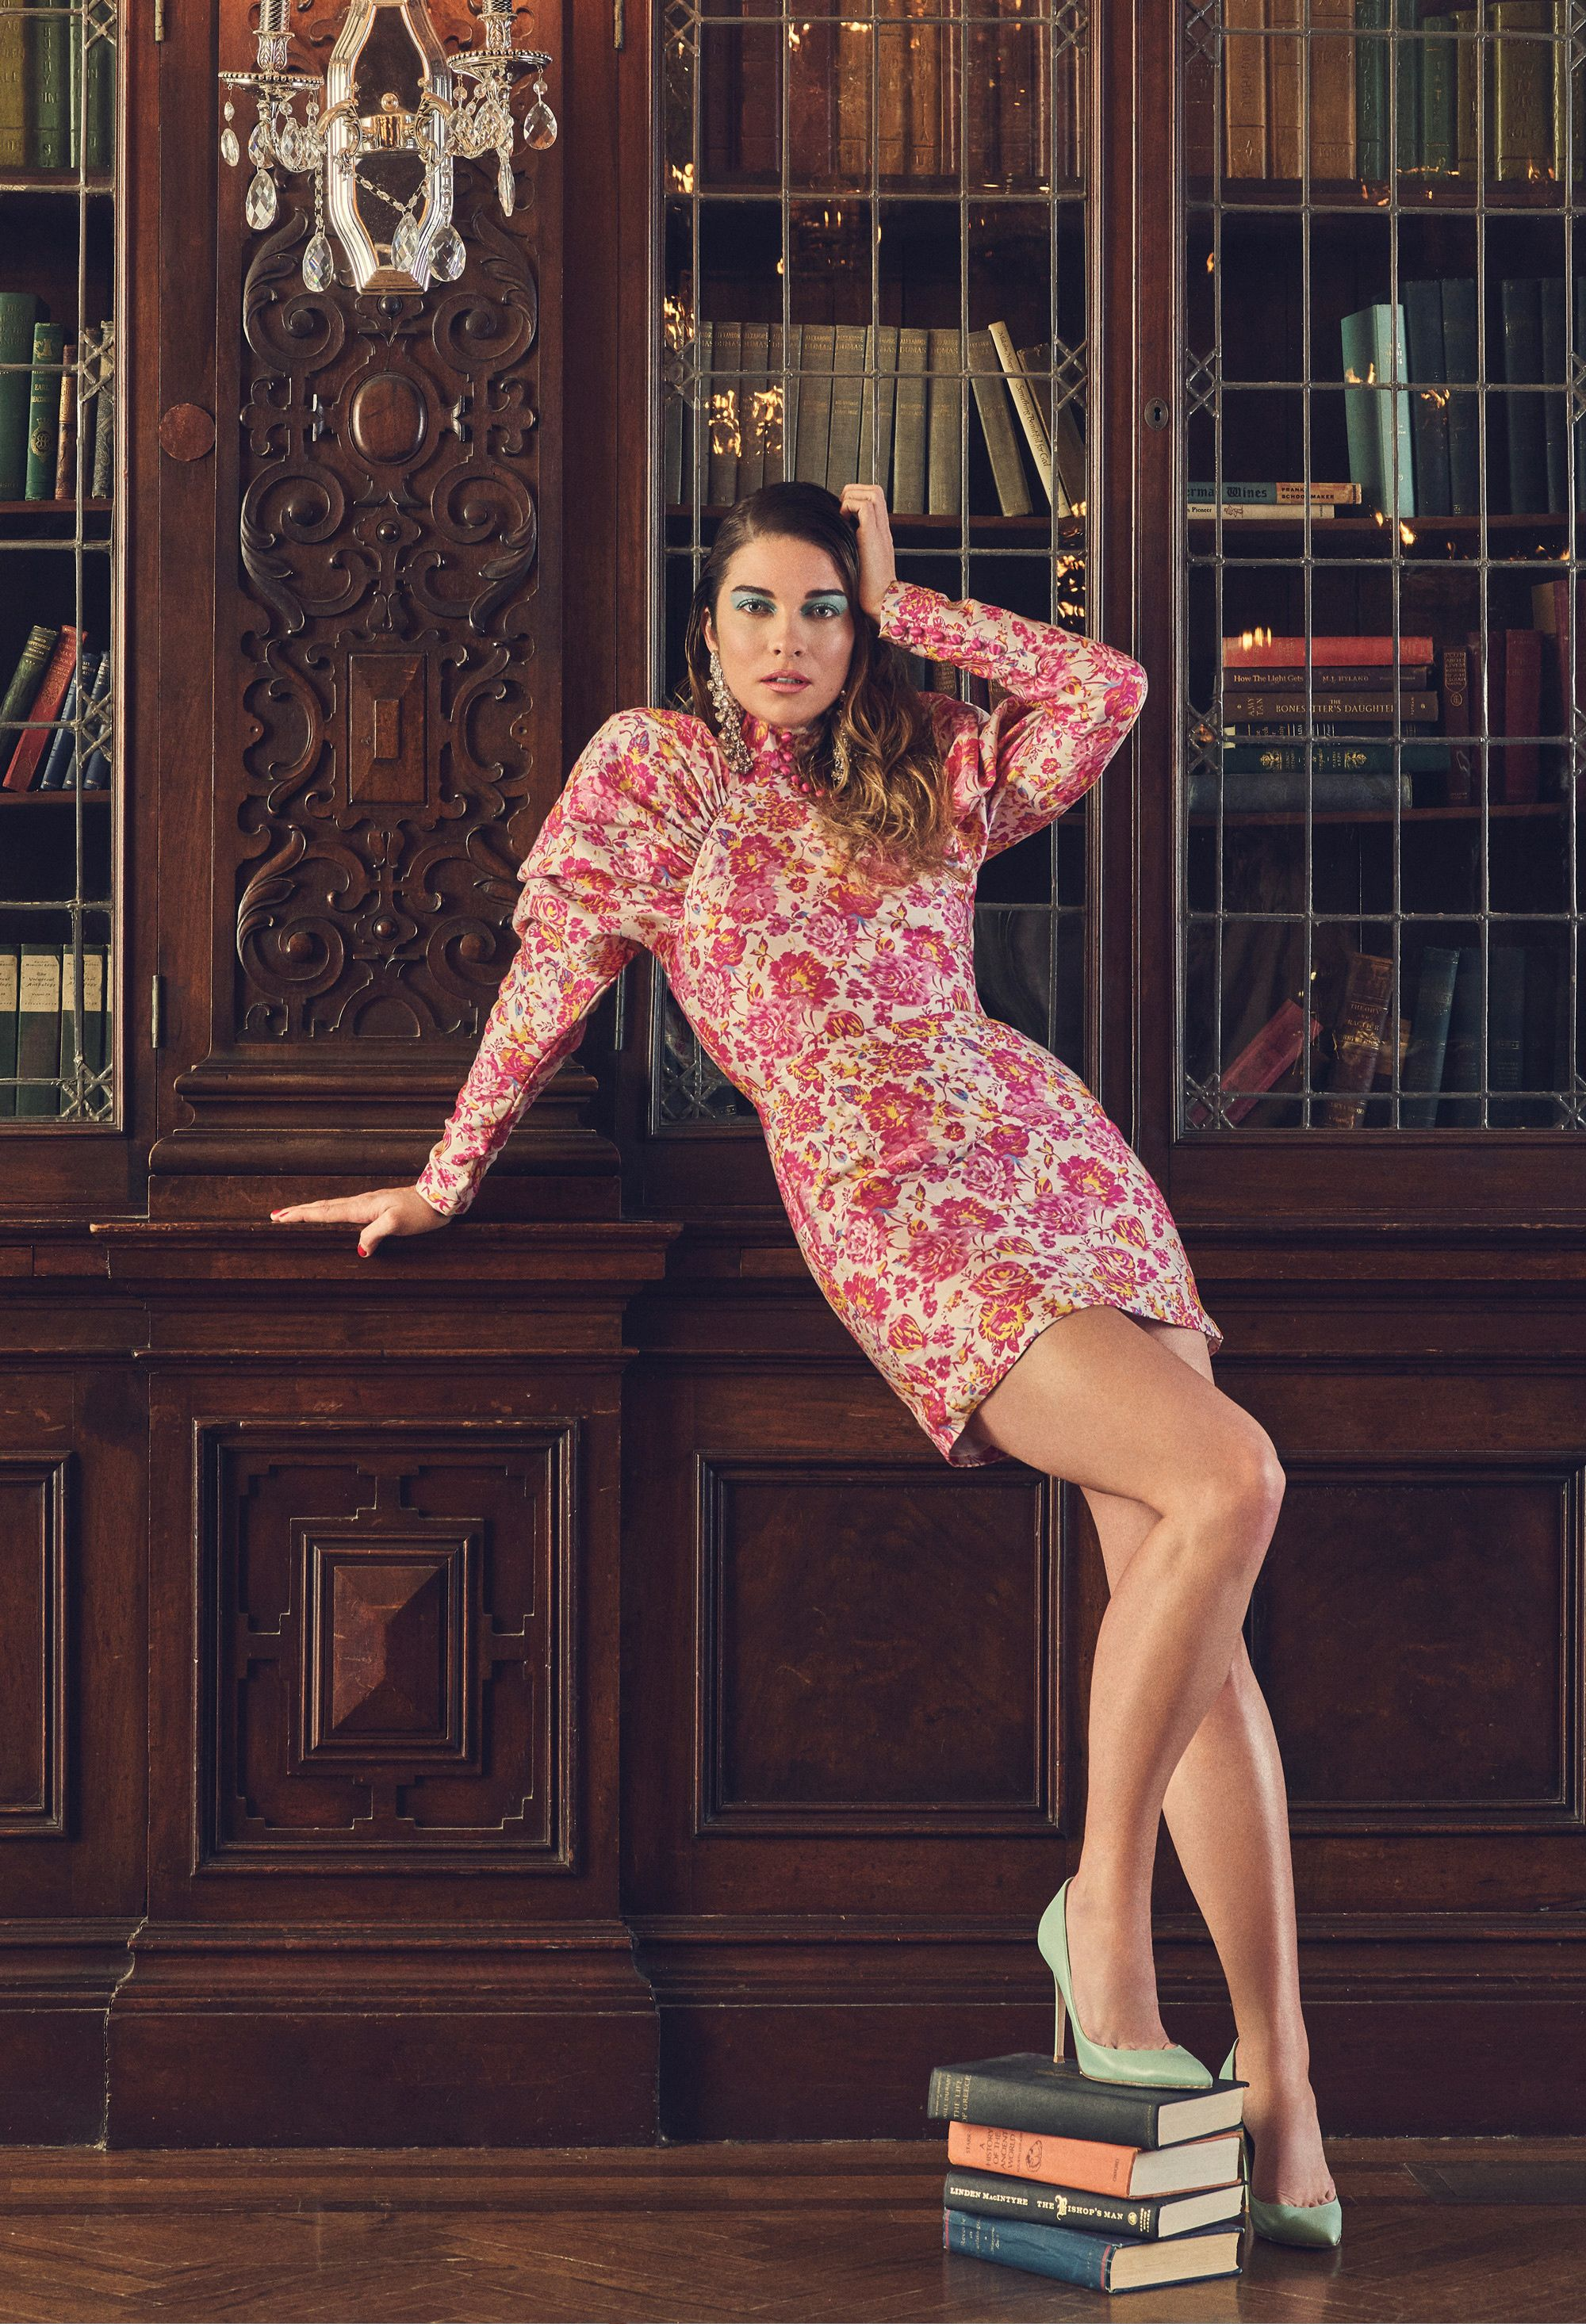 Annie Murphy in a floral dress in front of a vintage bookcase.